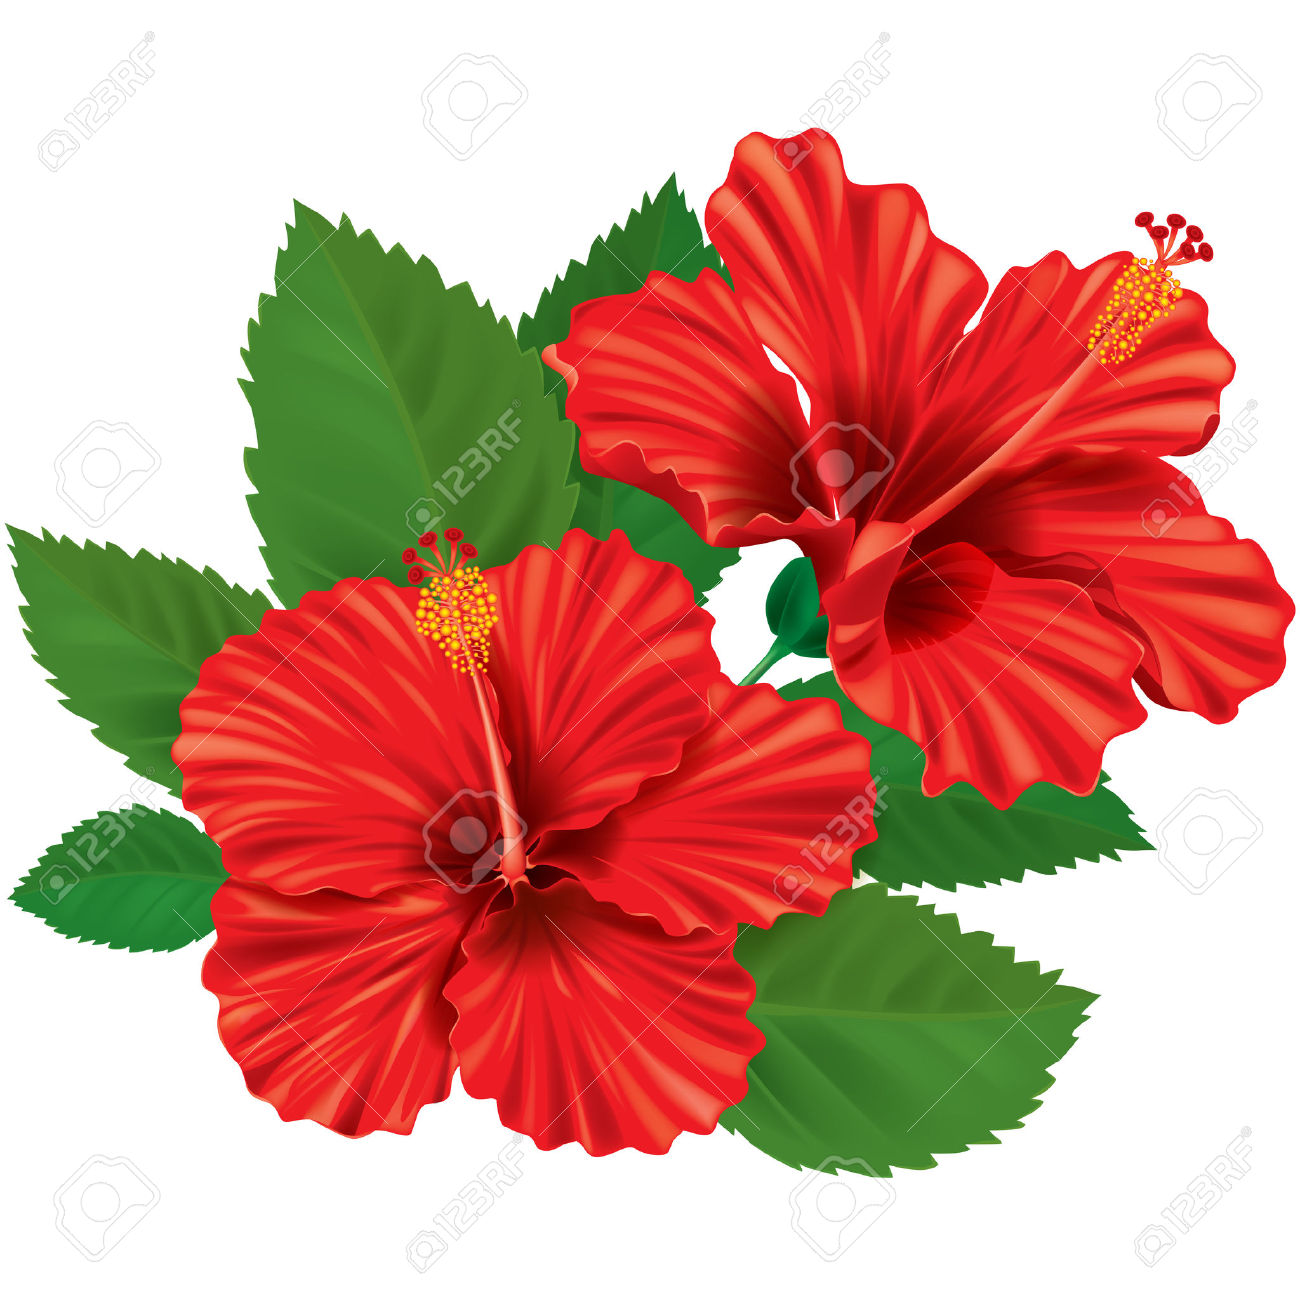 Hibiscus Clipart At Getdrawings Free For Personal Use Hibiscus